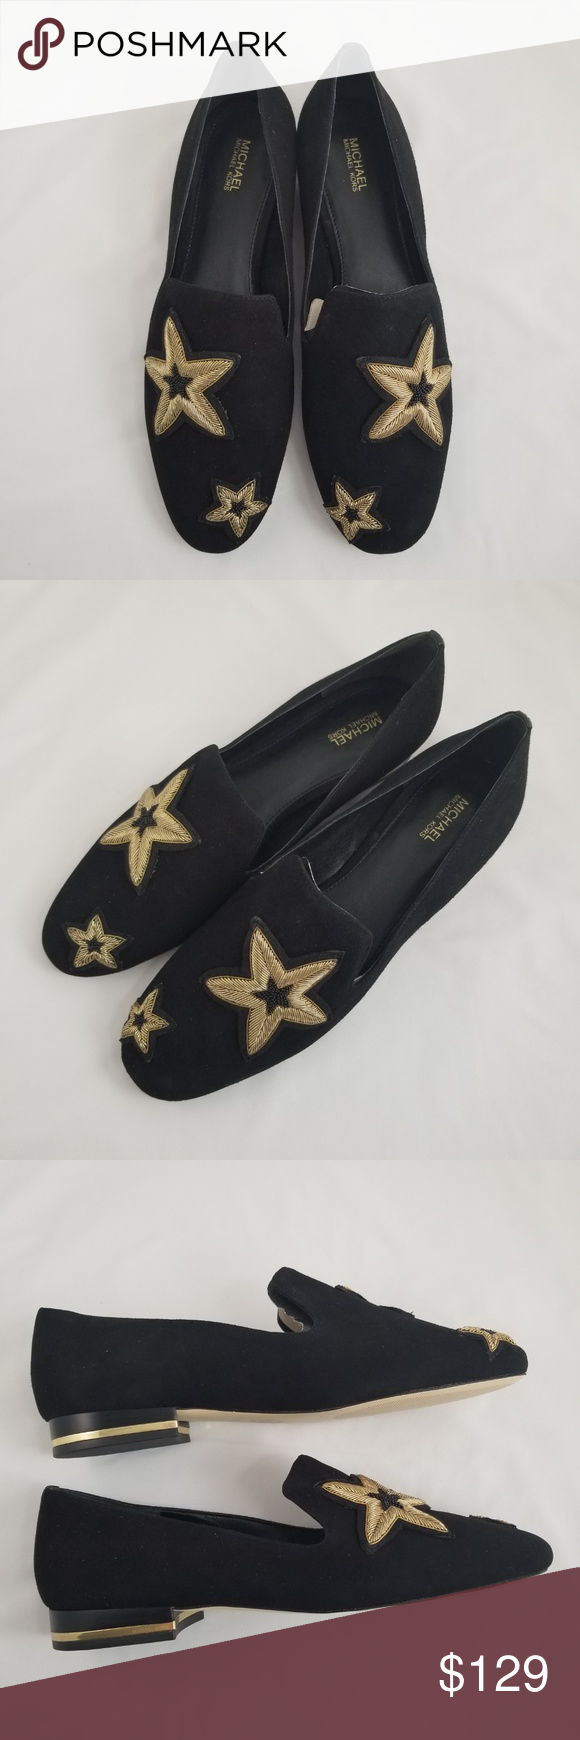 23224a55bce2 MICHAEL KORS Natasha Star Appliqué Suede Flats 9M Add a touch of whimsy to  off-